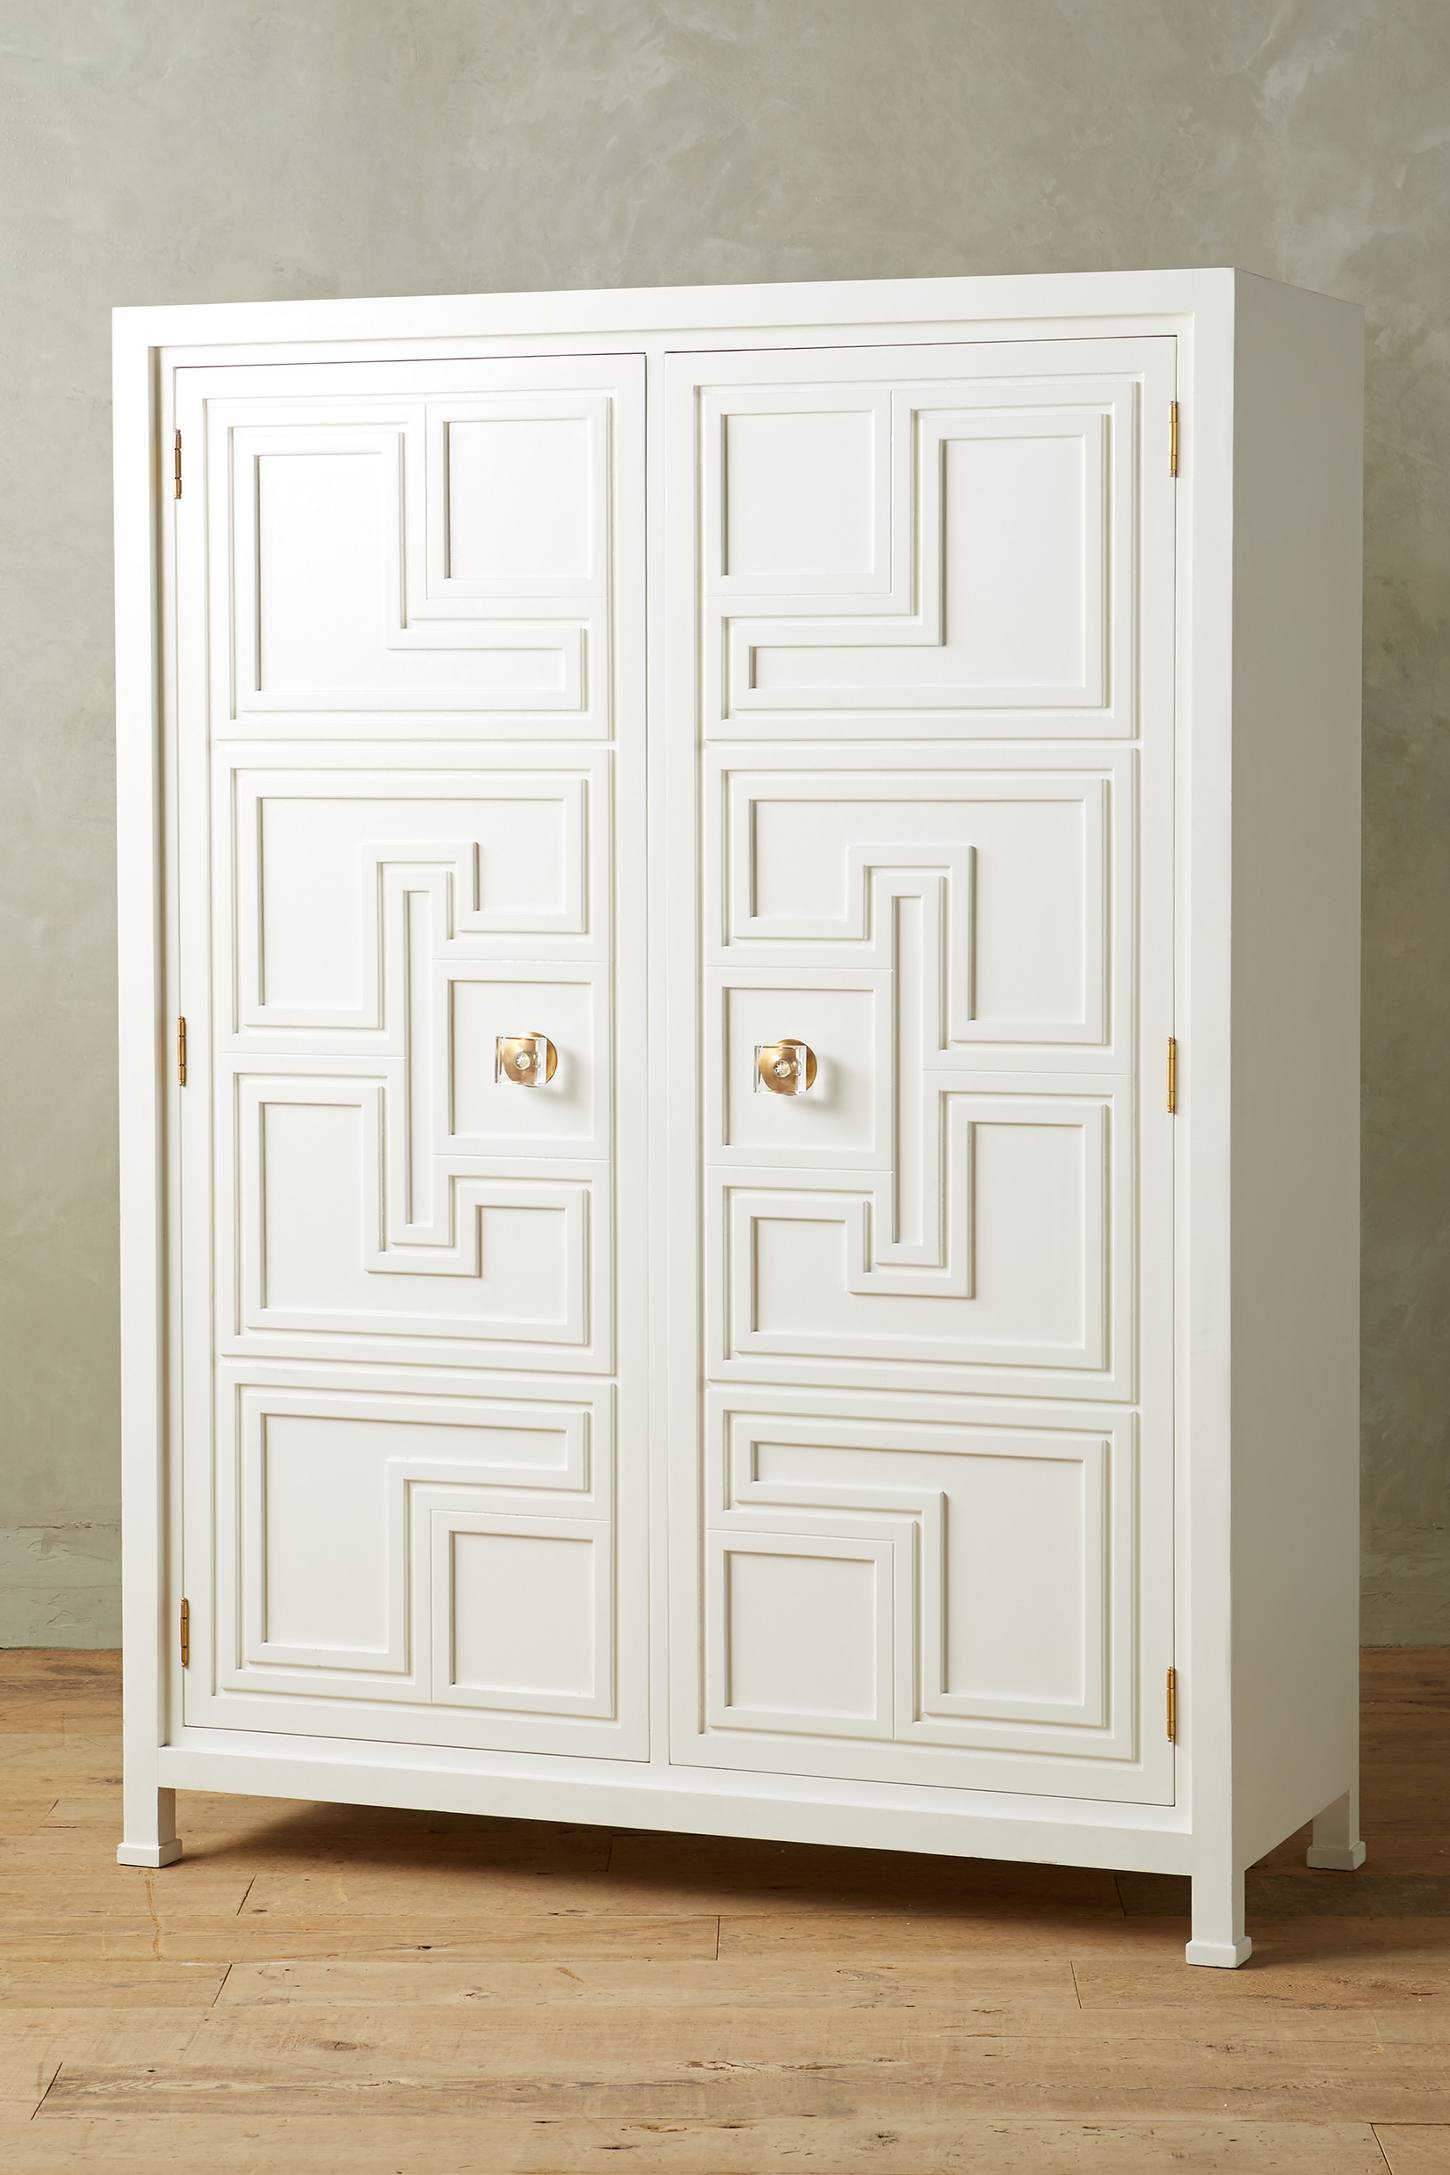 Lacquered regency armoire anthropologie - Armoire design blanche ...